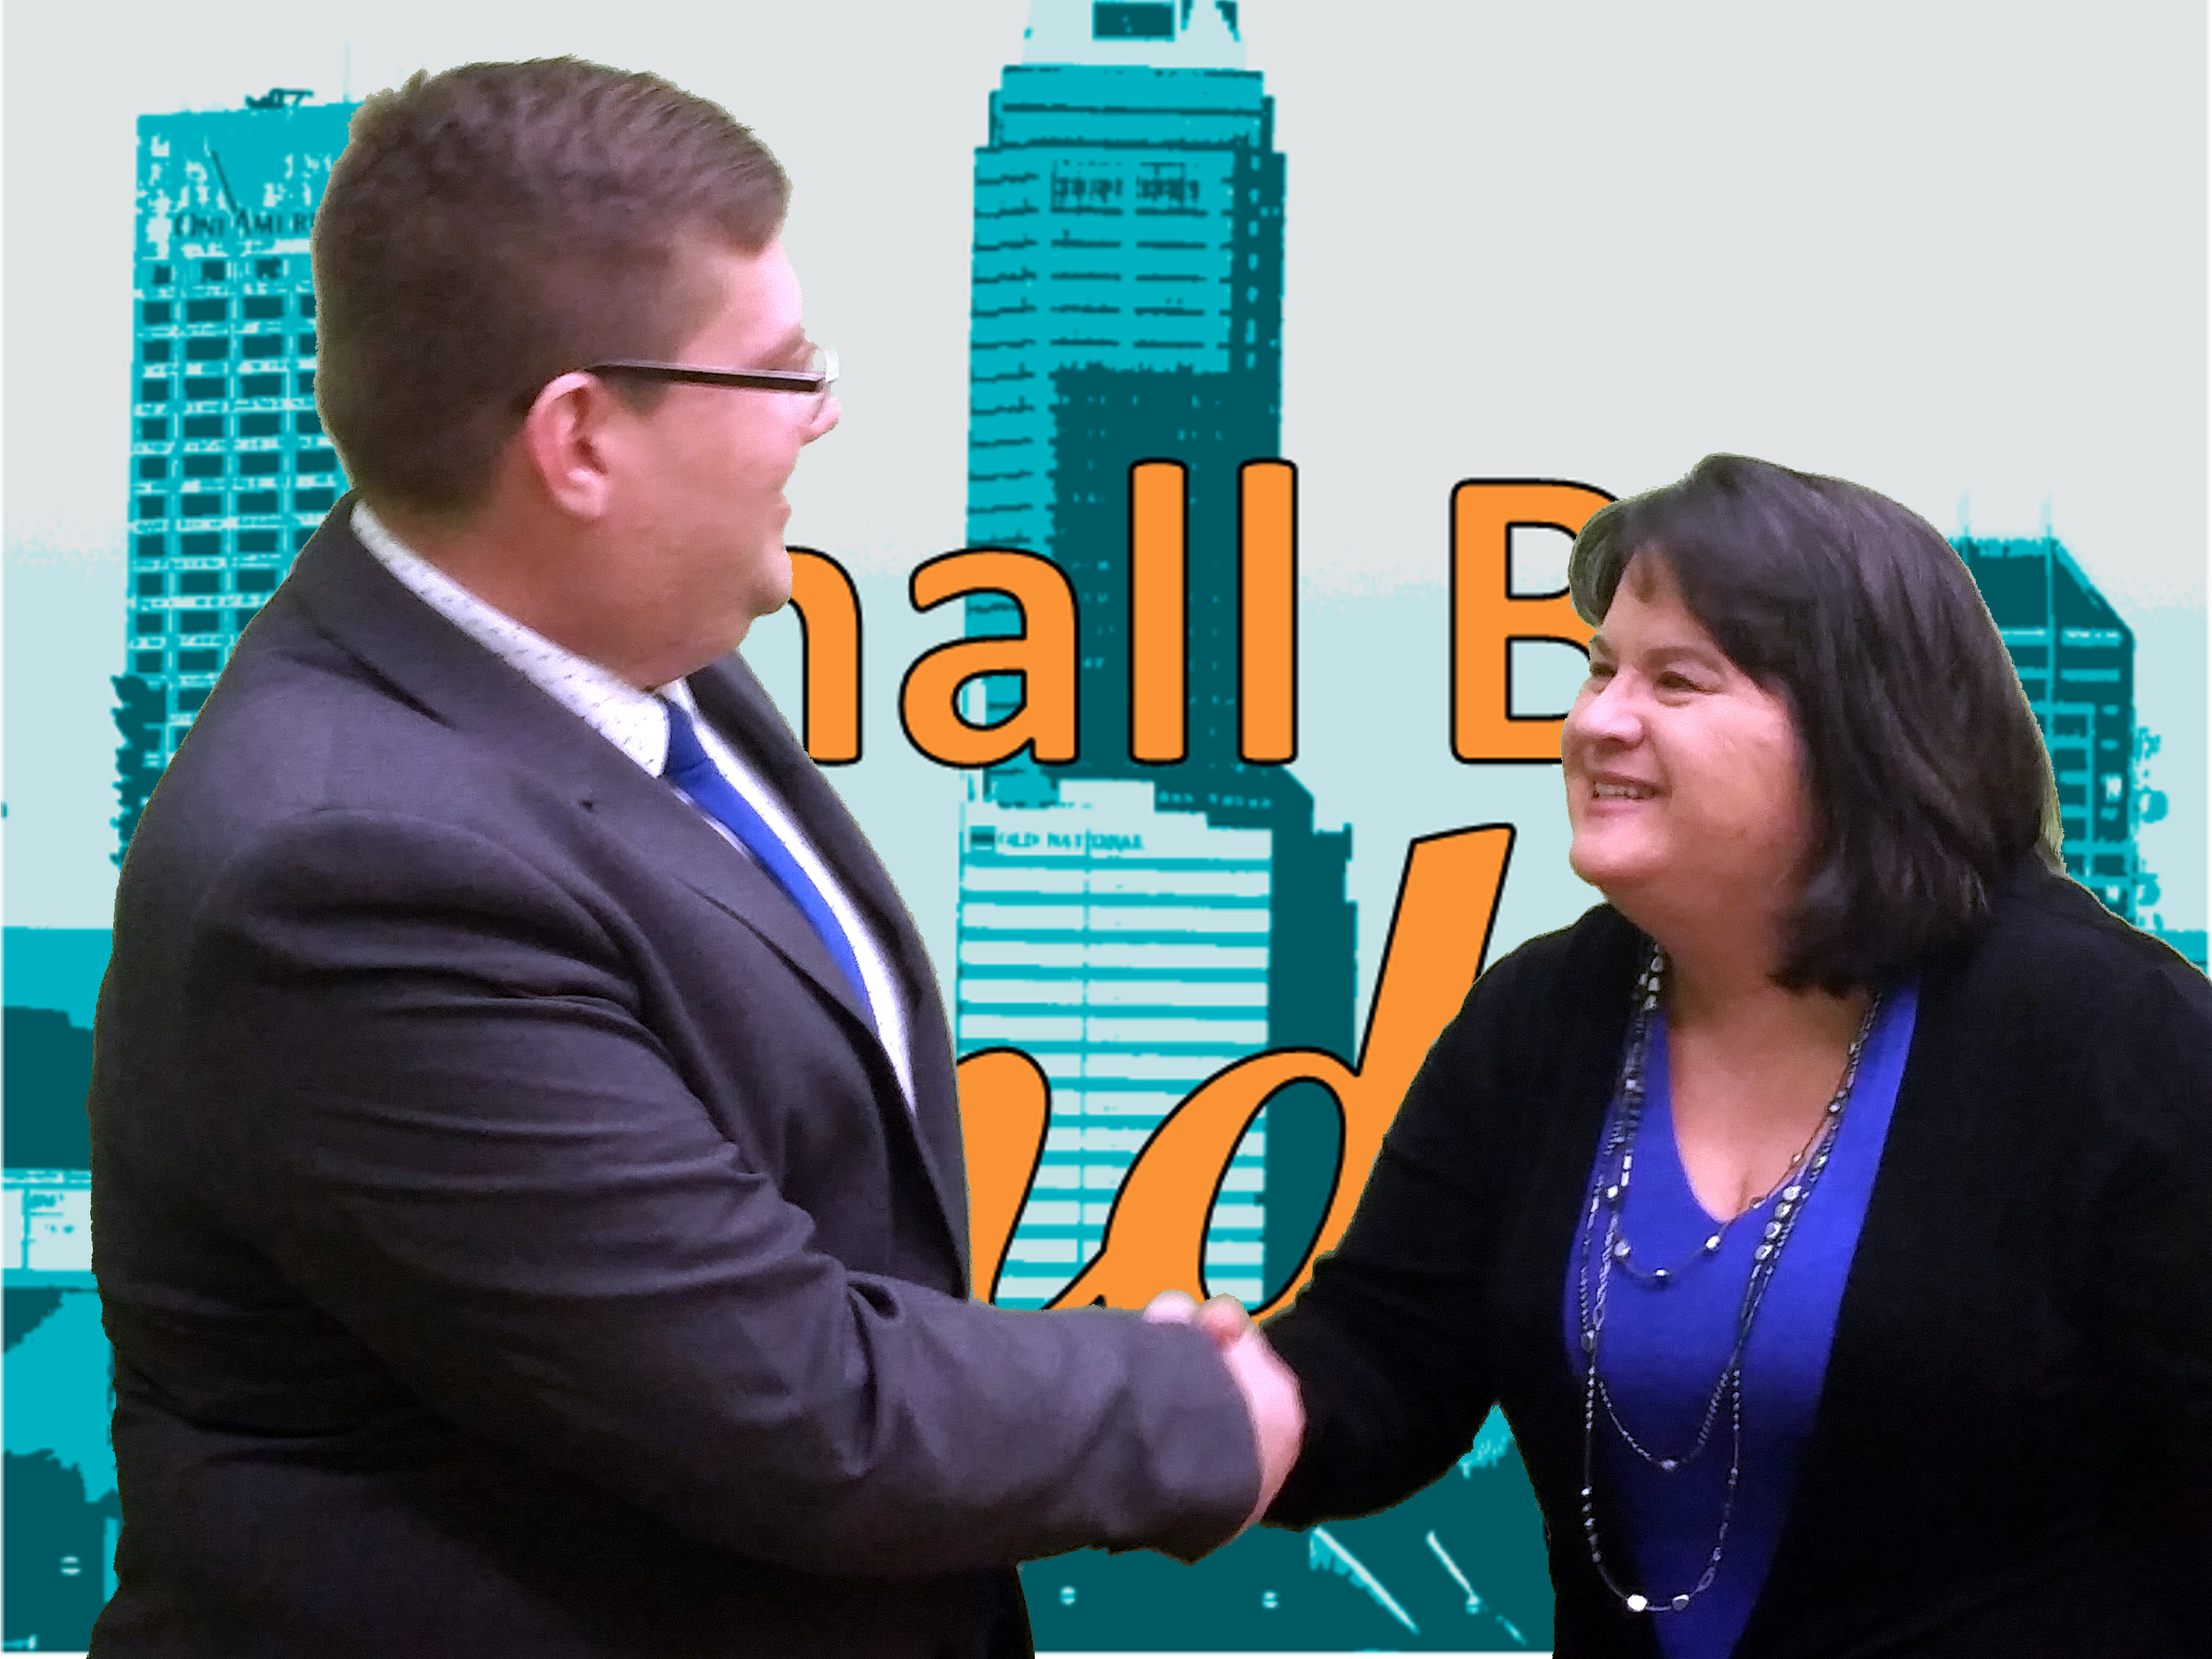 Ryan Henry and Cindy Garloch, shaking hands, in front of the Small Biz Indy logo (orange text over an aqua colorized image of Indianapolis)